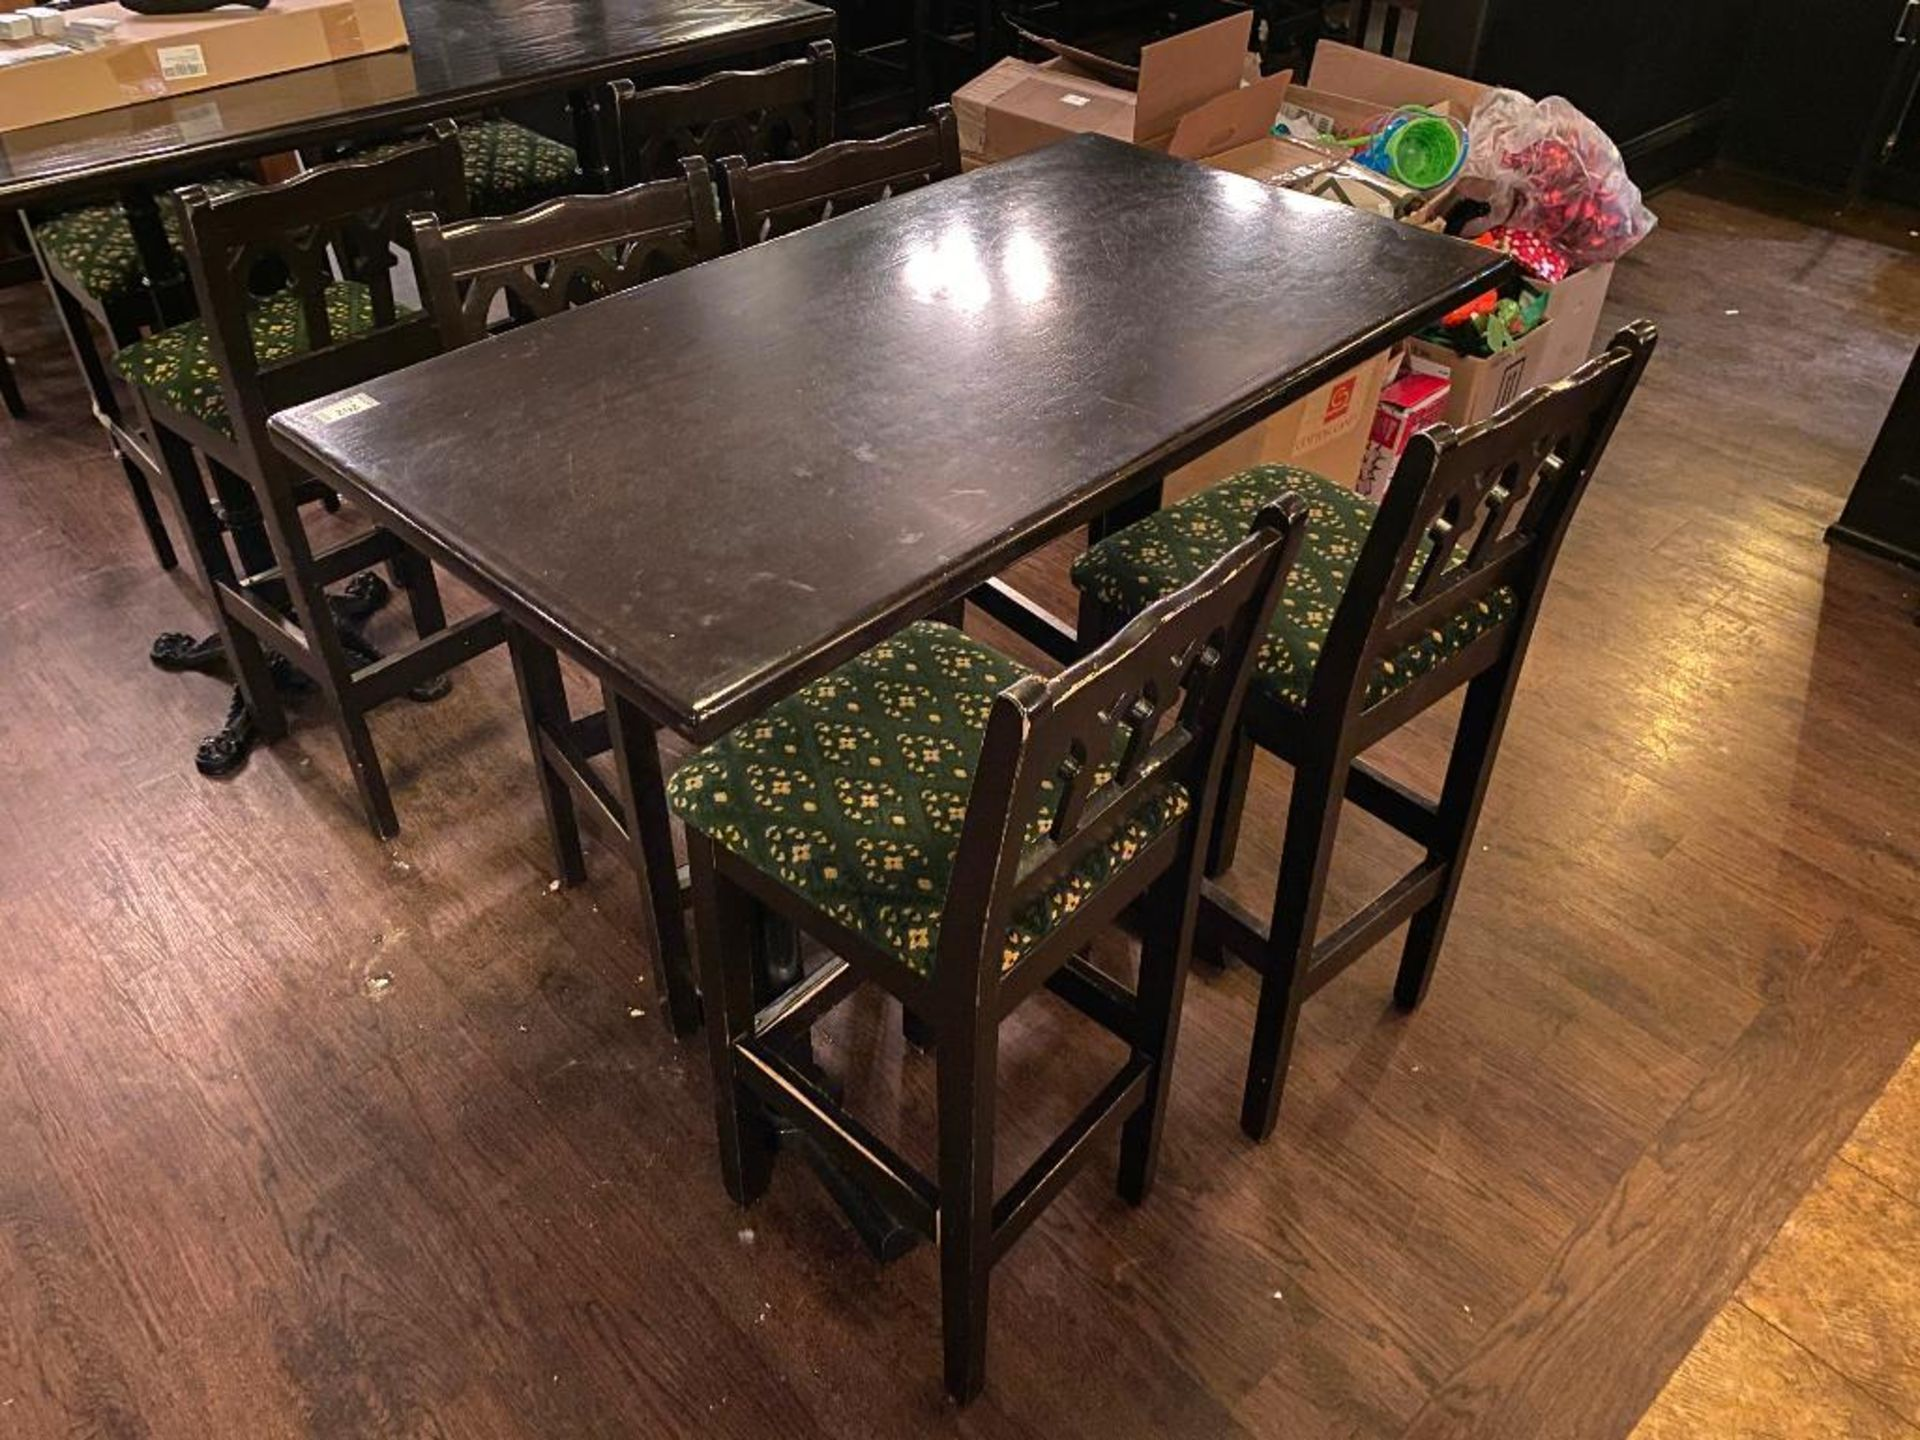 RECTANGULAR BAR HEIGHT TABLE WITH 4 BAR HEIGHT CHAIRS - Image 2 of 3